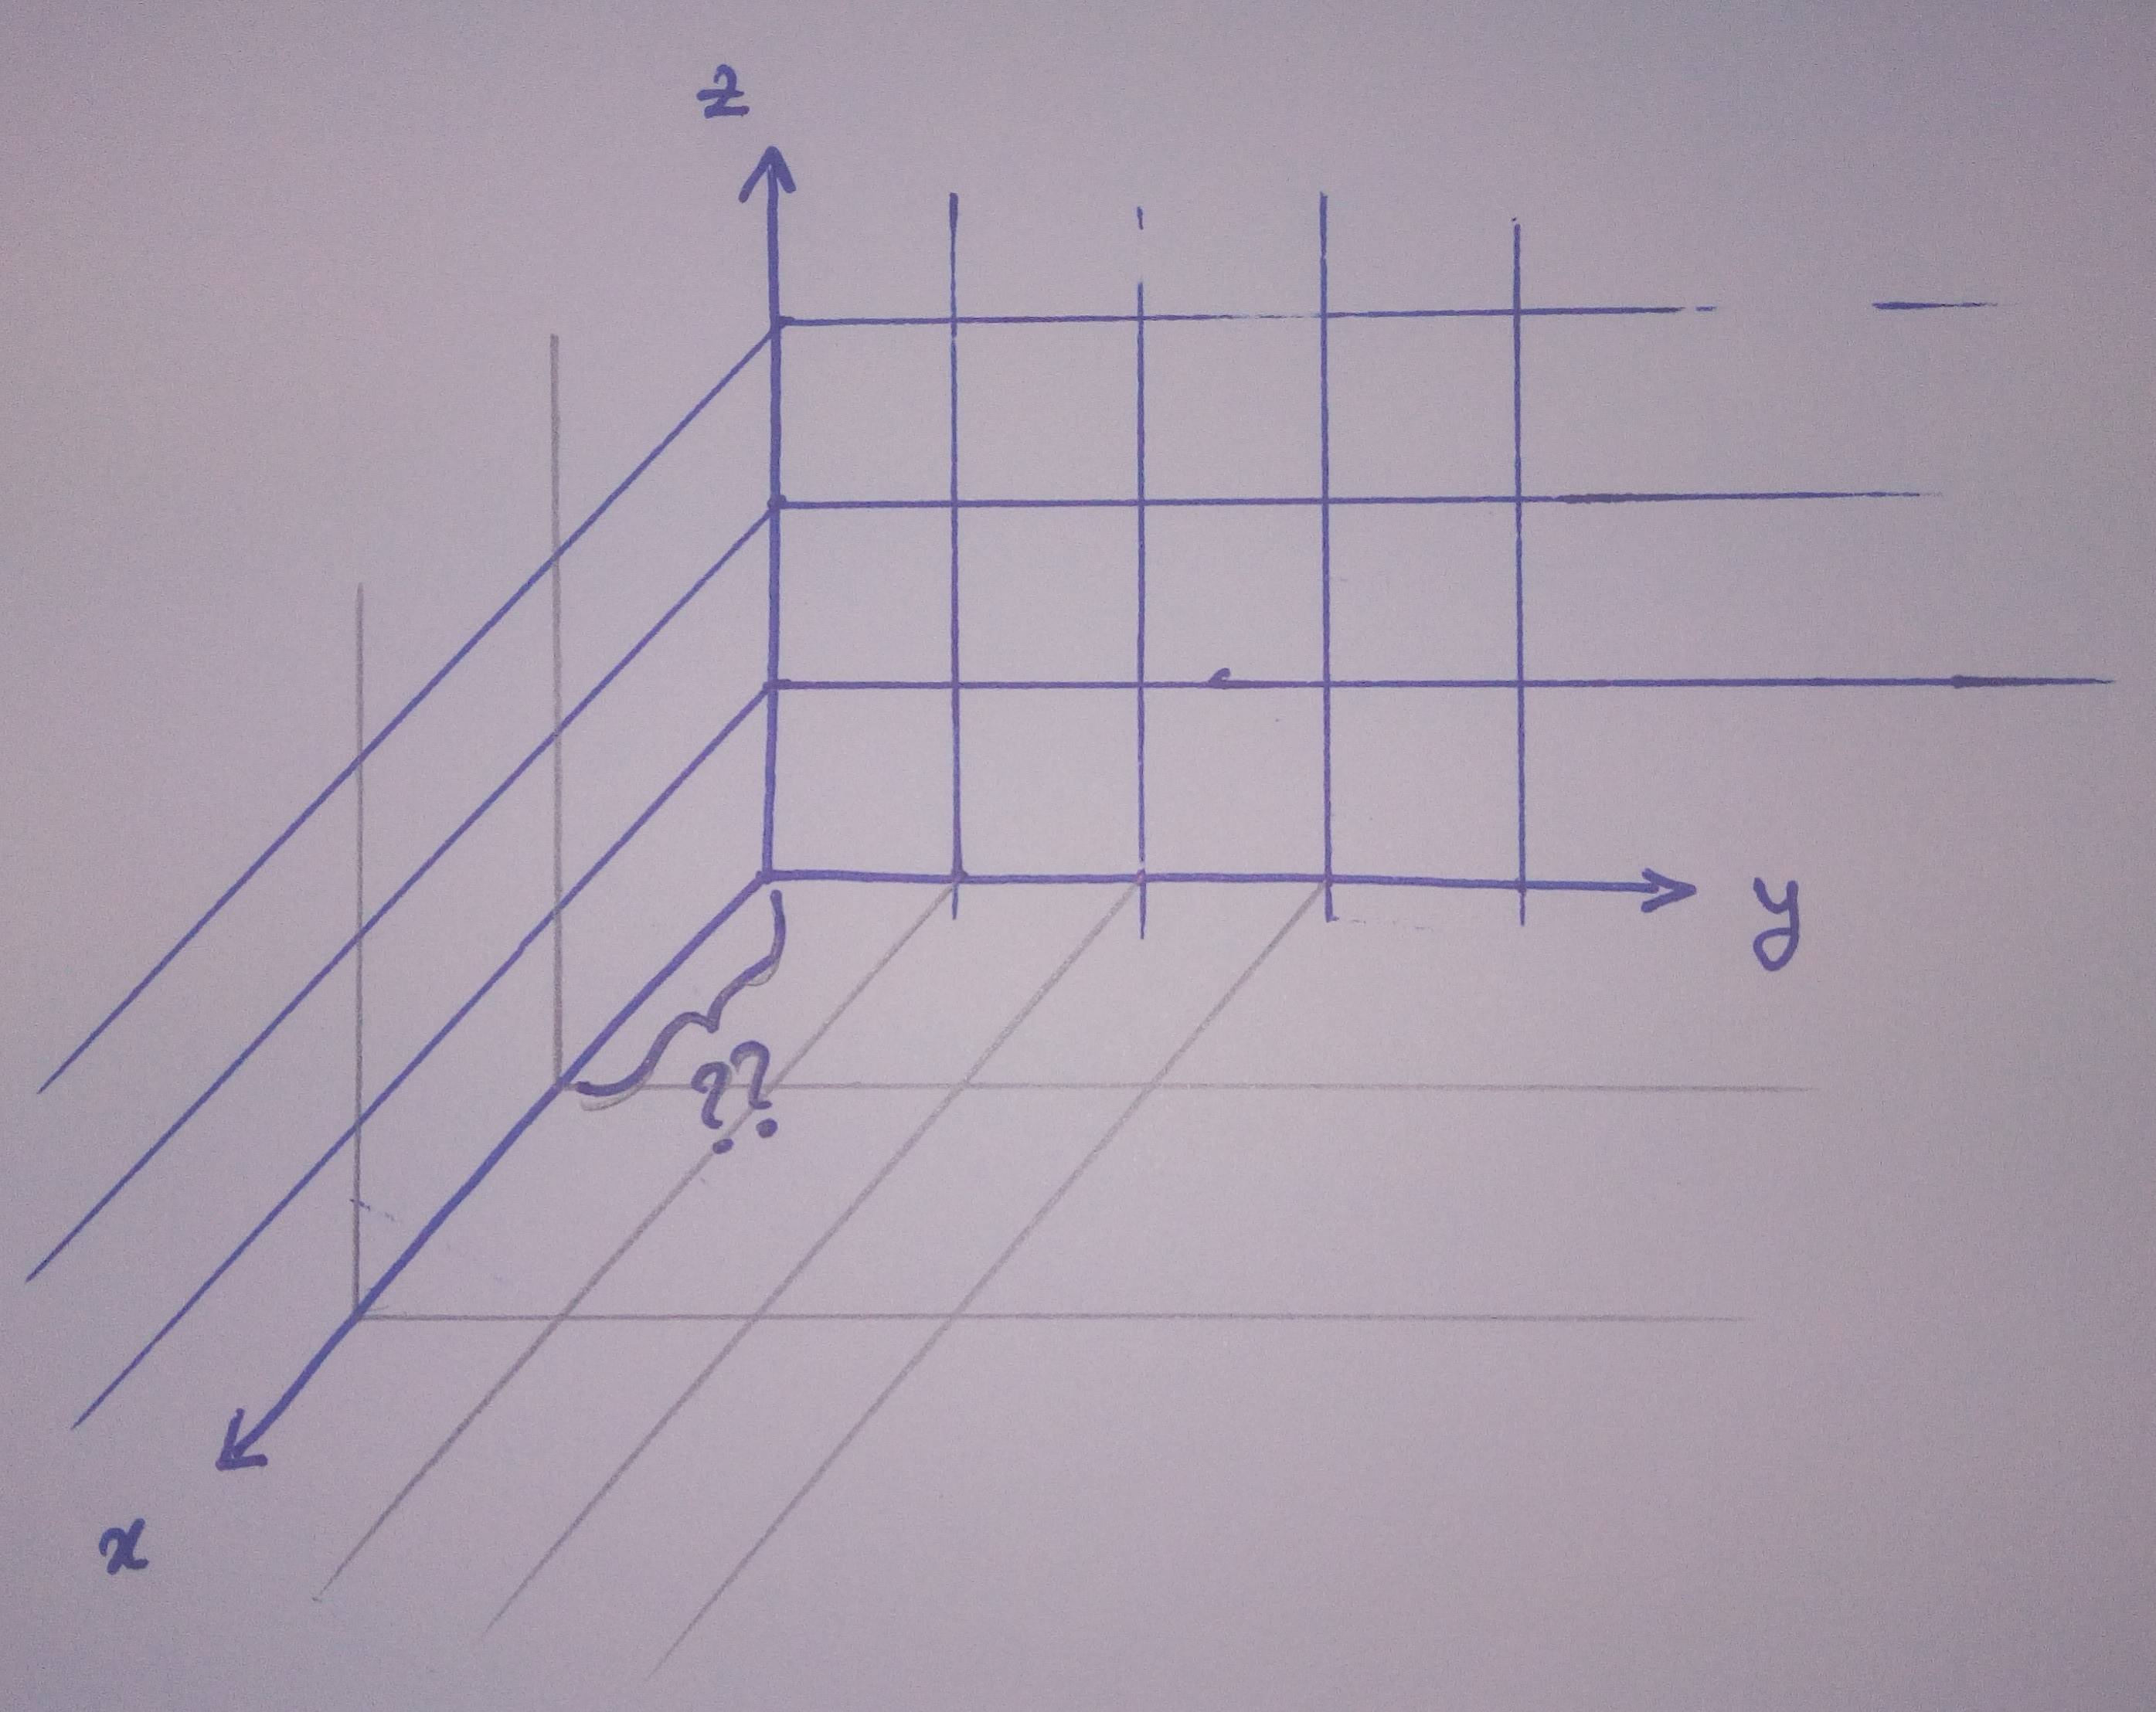 Graphing Calculator With Z Axis Image Gallery Xyz Plane